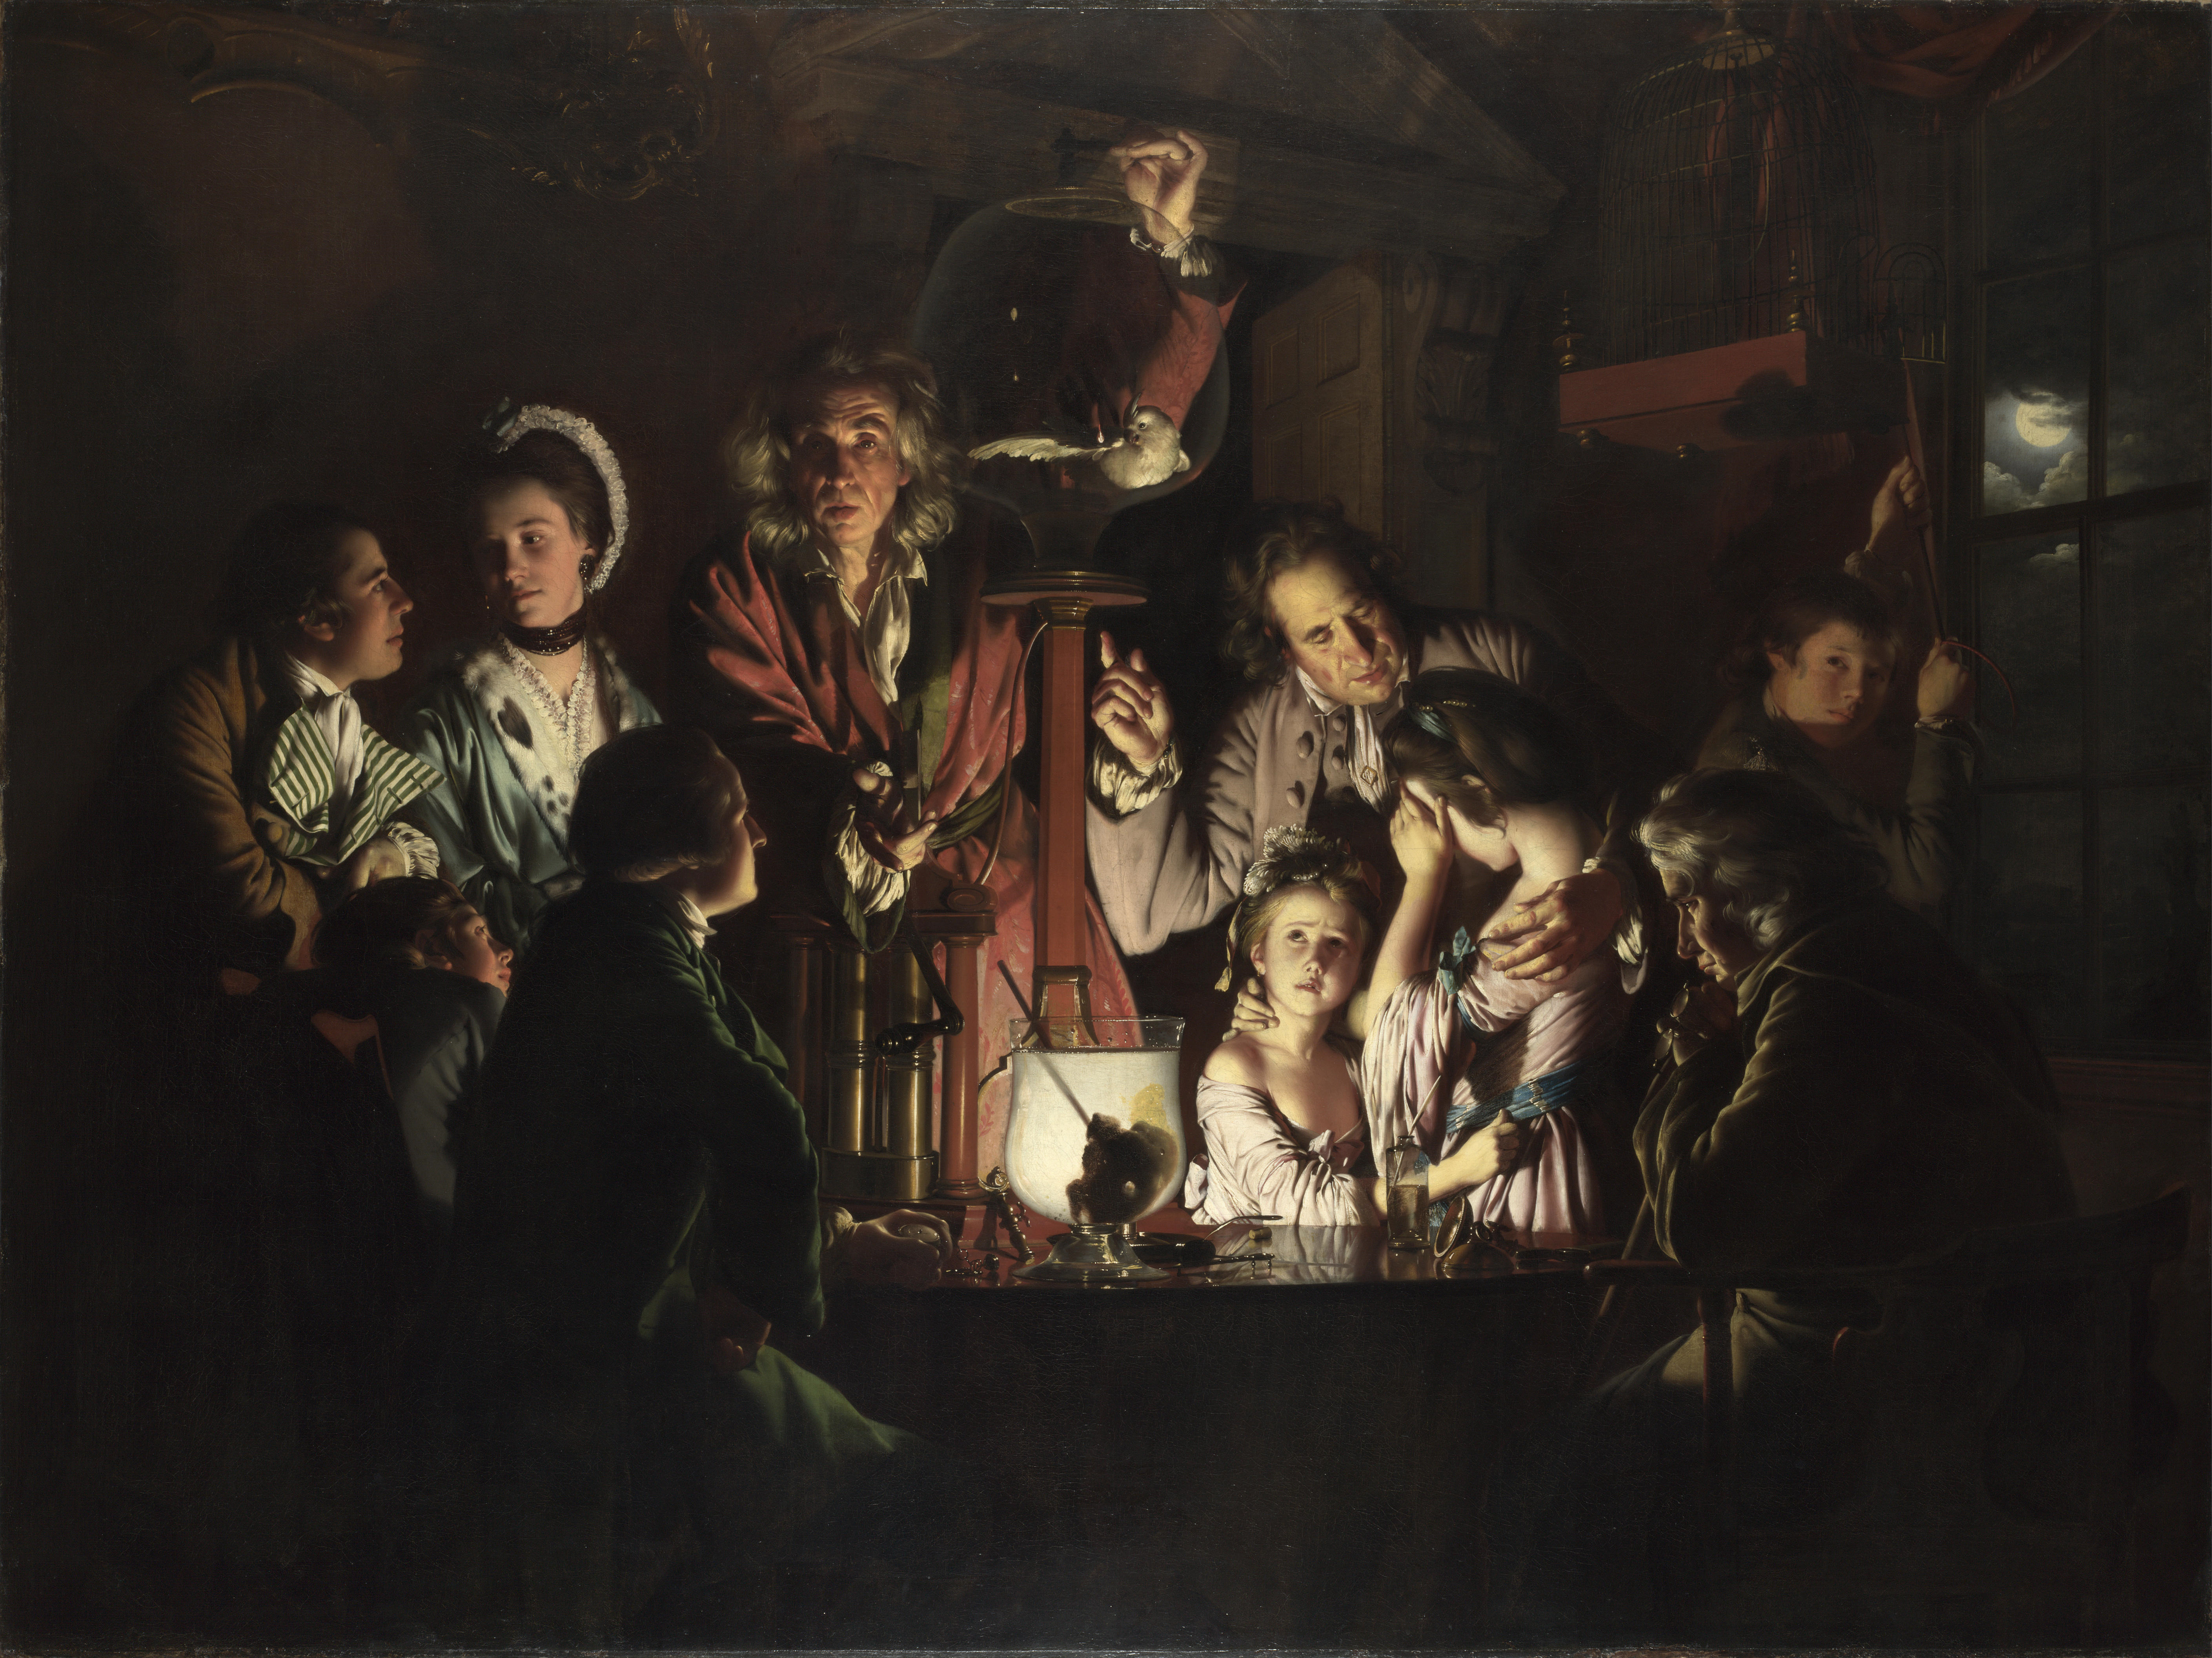 The Experiment by Joseph Wright of Derby